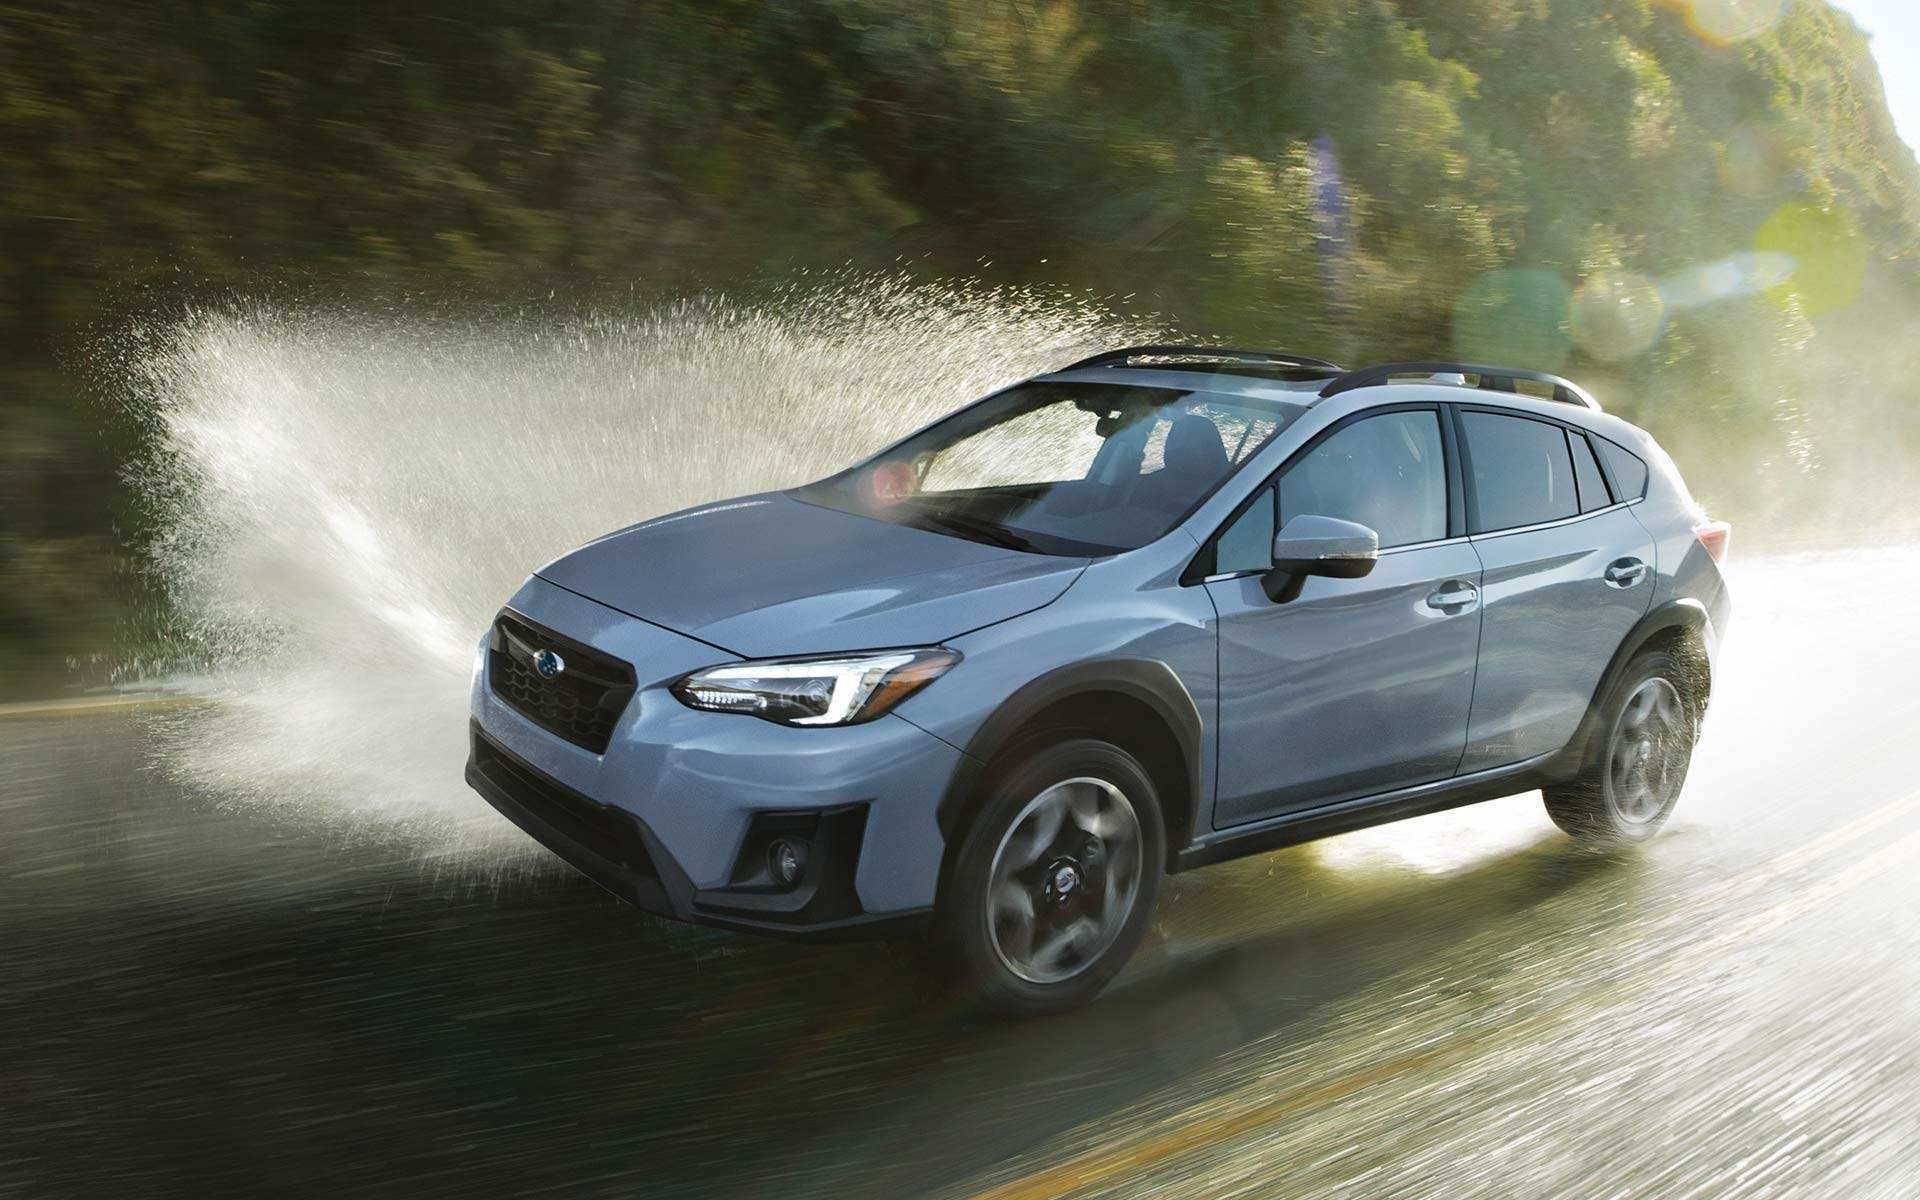 19 All New 2019 Subaru Crosstrek Review Price And Release Date Specs and Review by 2019 Subaru Crosstrek Review Price And Release Date